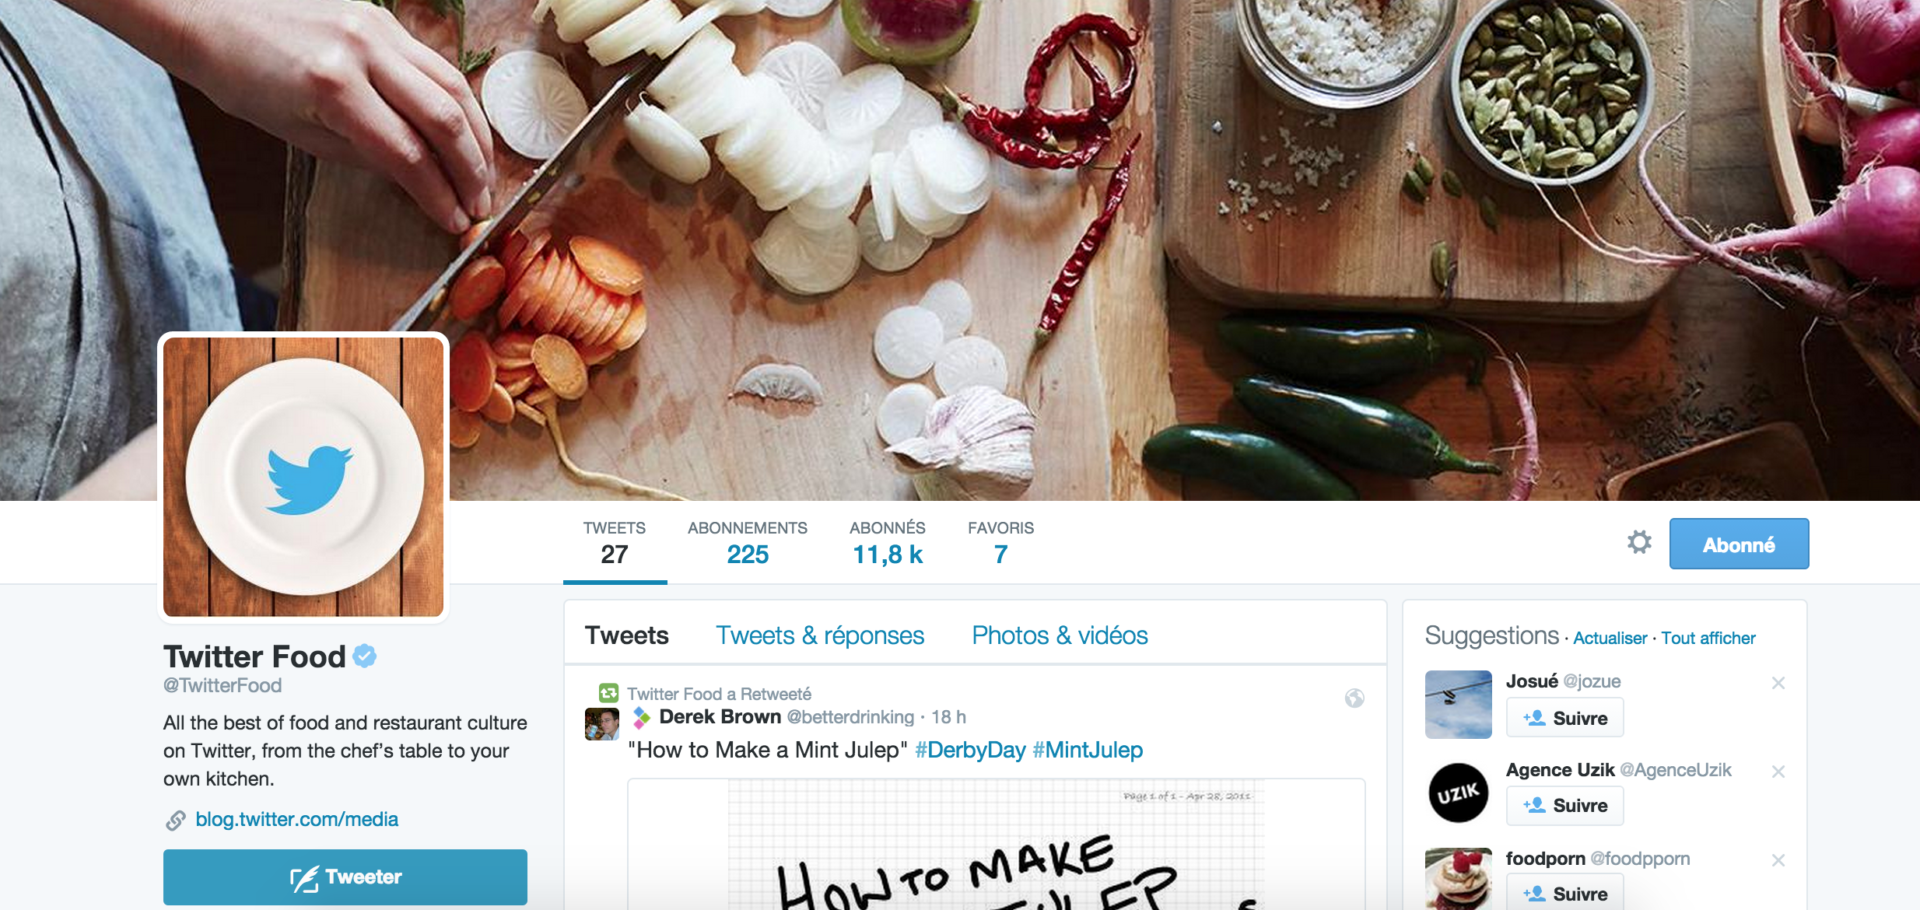 twitterfood-page